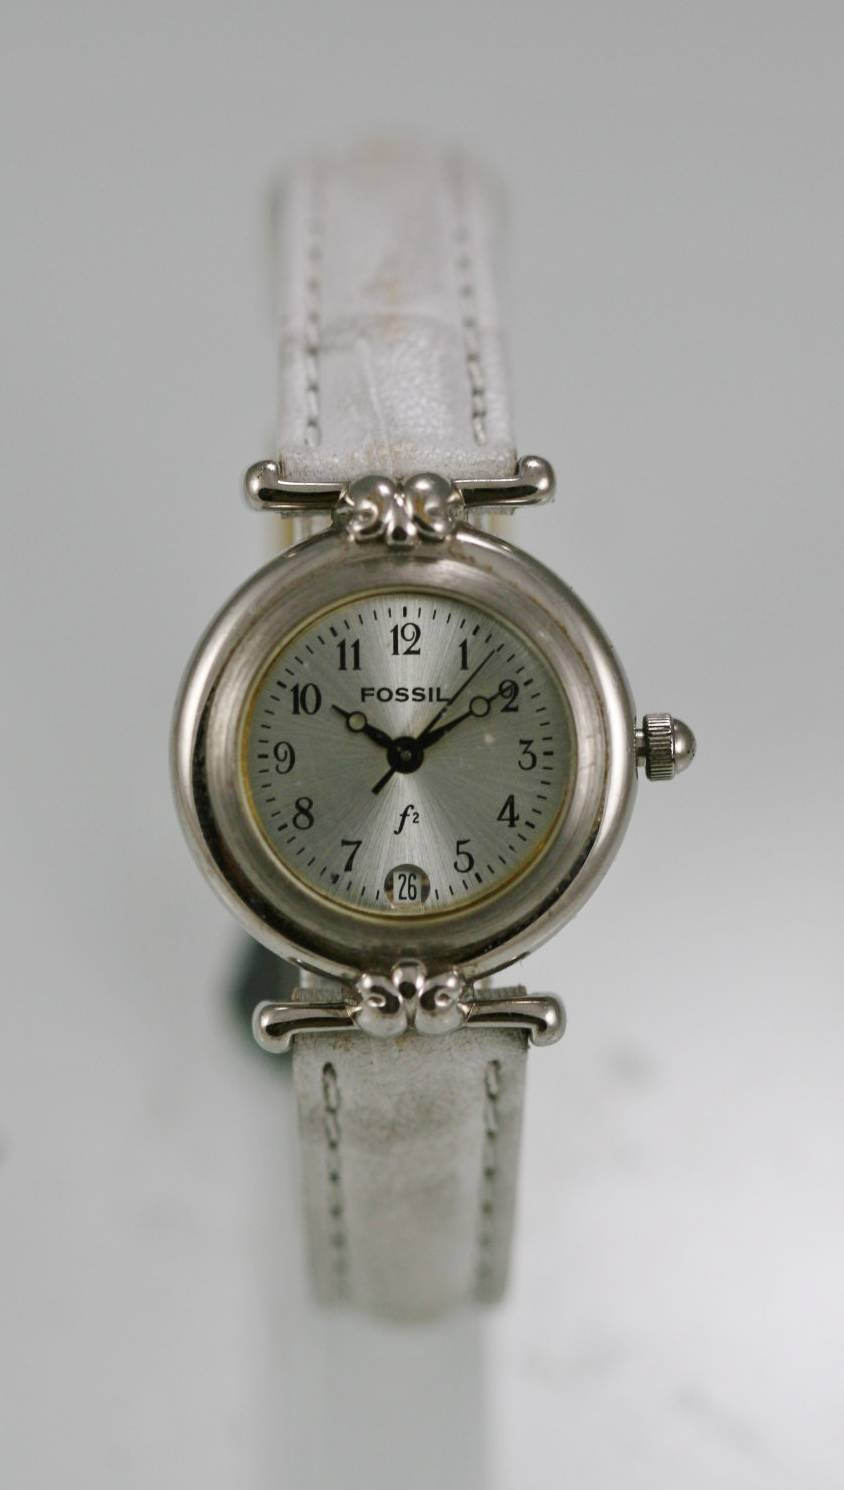 d7c04852b63 Details about Fossil Watch Women Date Stainless Silver White Leather Water  Resistant Quartz